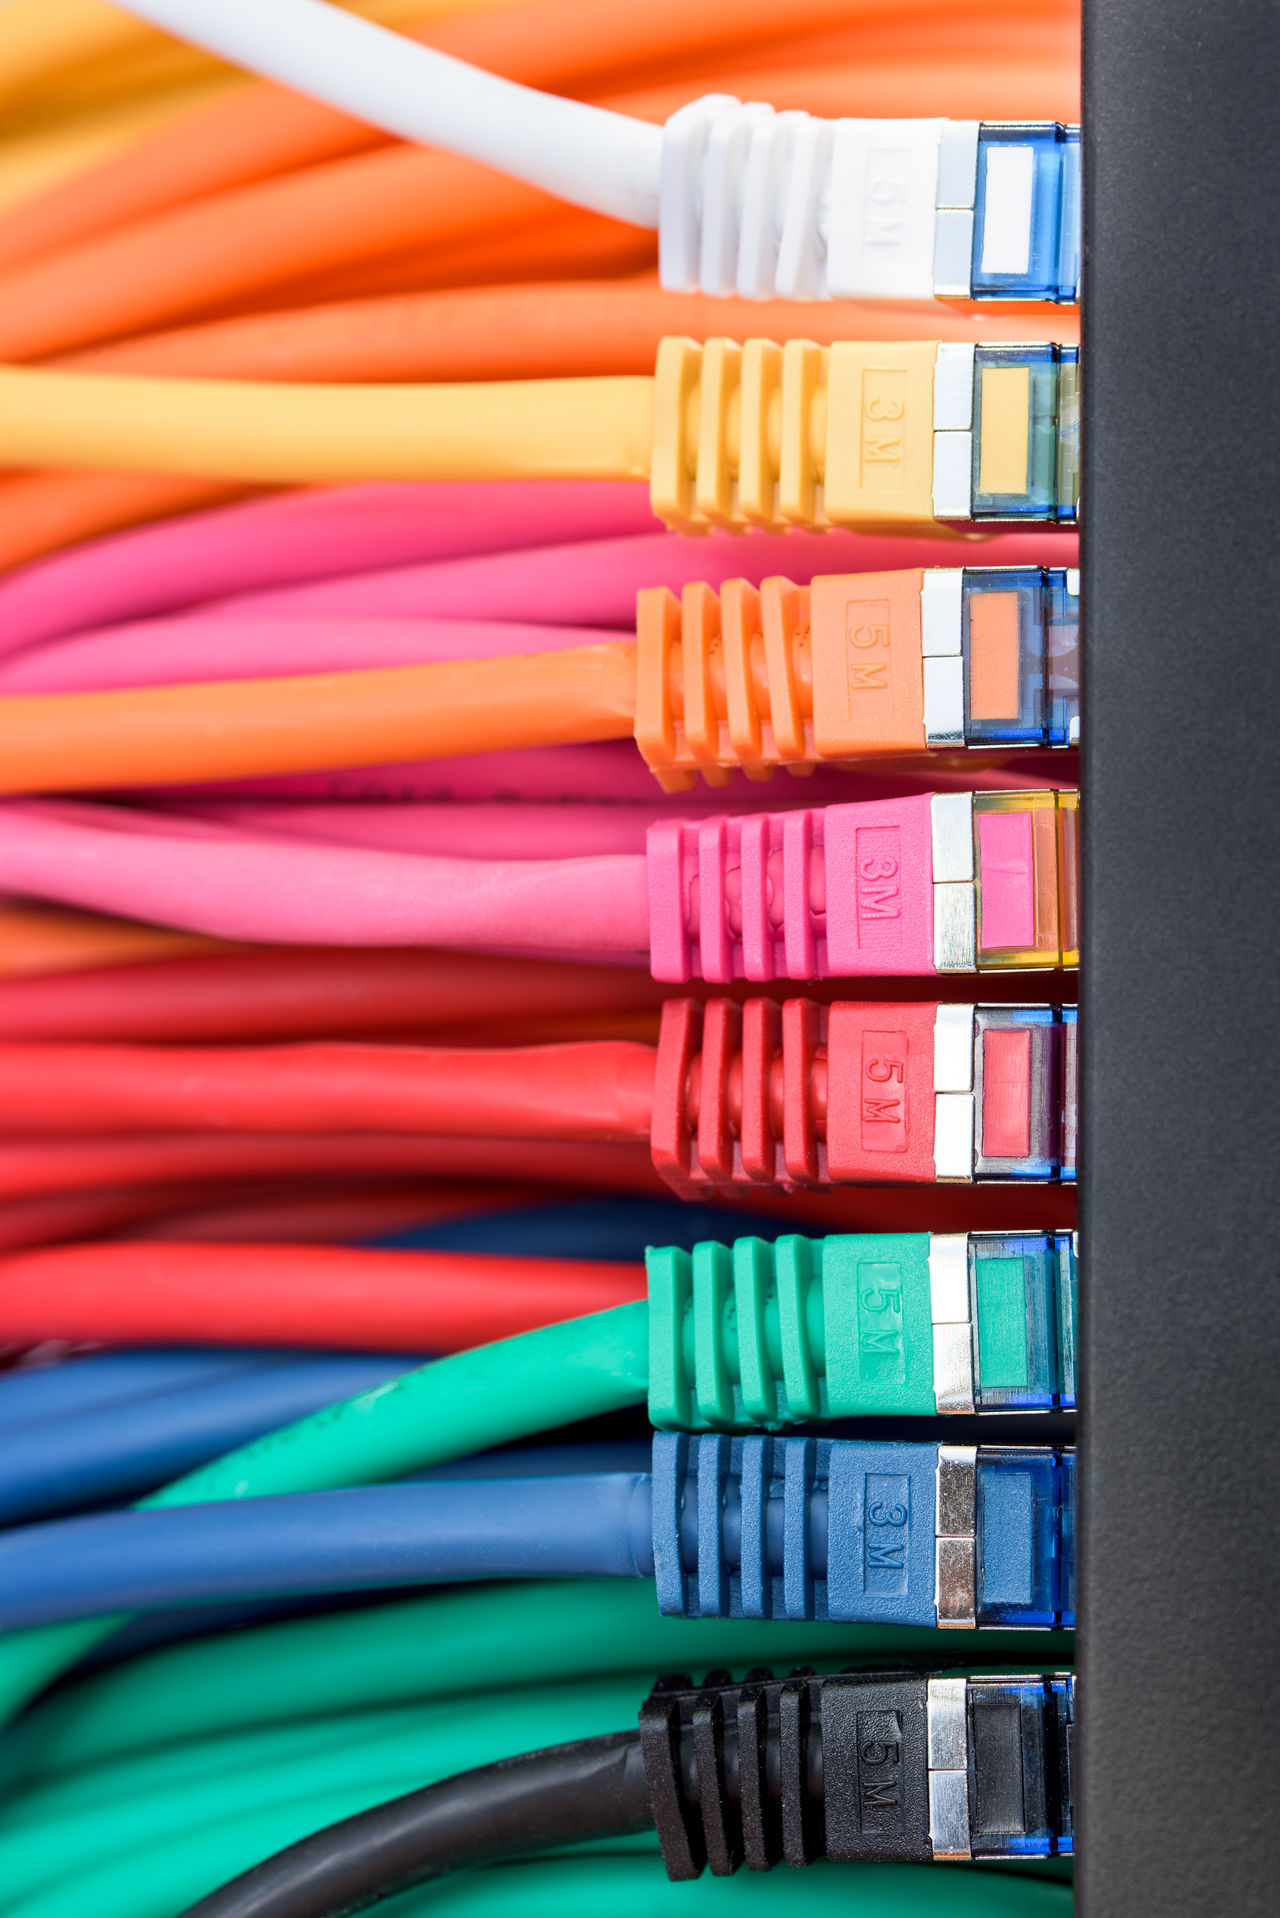 Beautiful stock photos of menschen, Cable, Colorful, Computer Cable, Computer Network